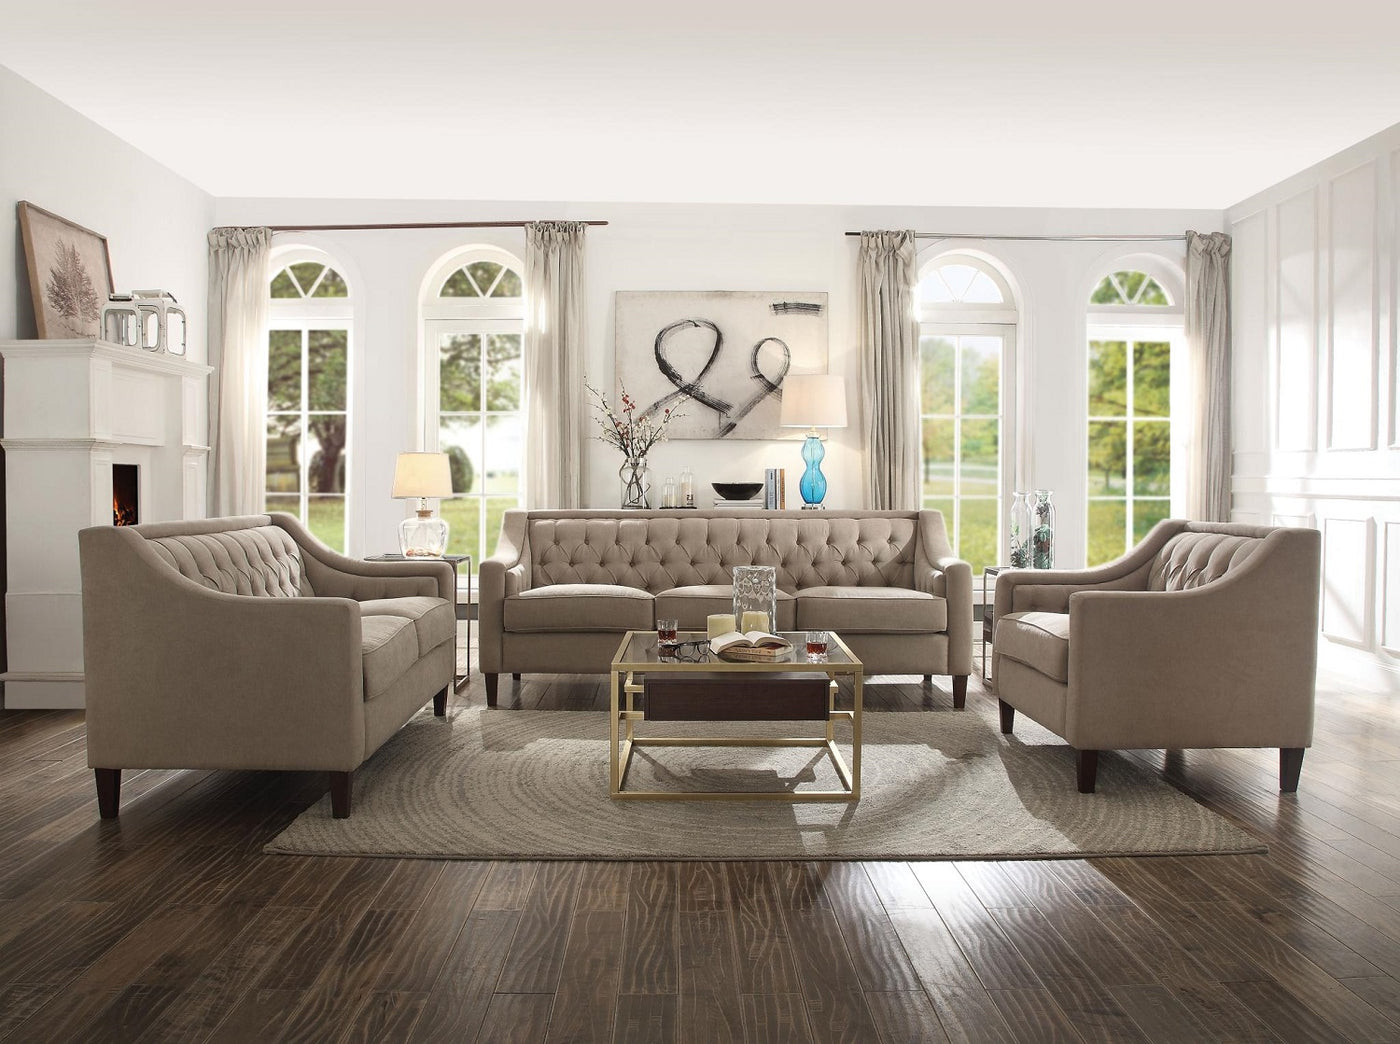 Jem 27 pc. Living Package - Sofa / Love Seat / Accent Chair